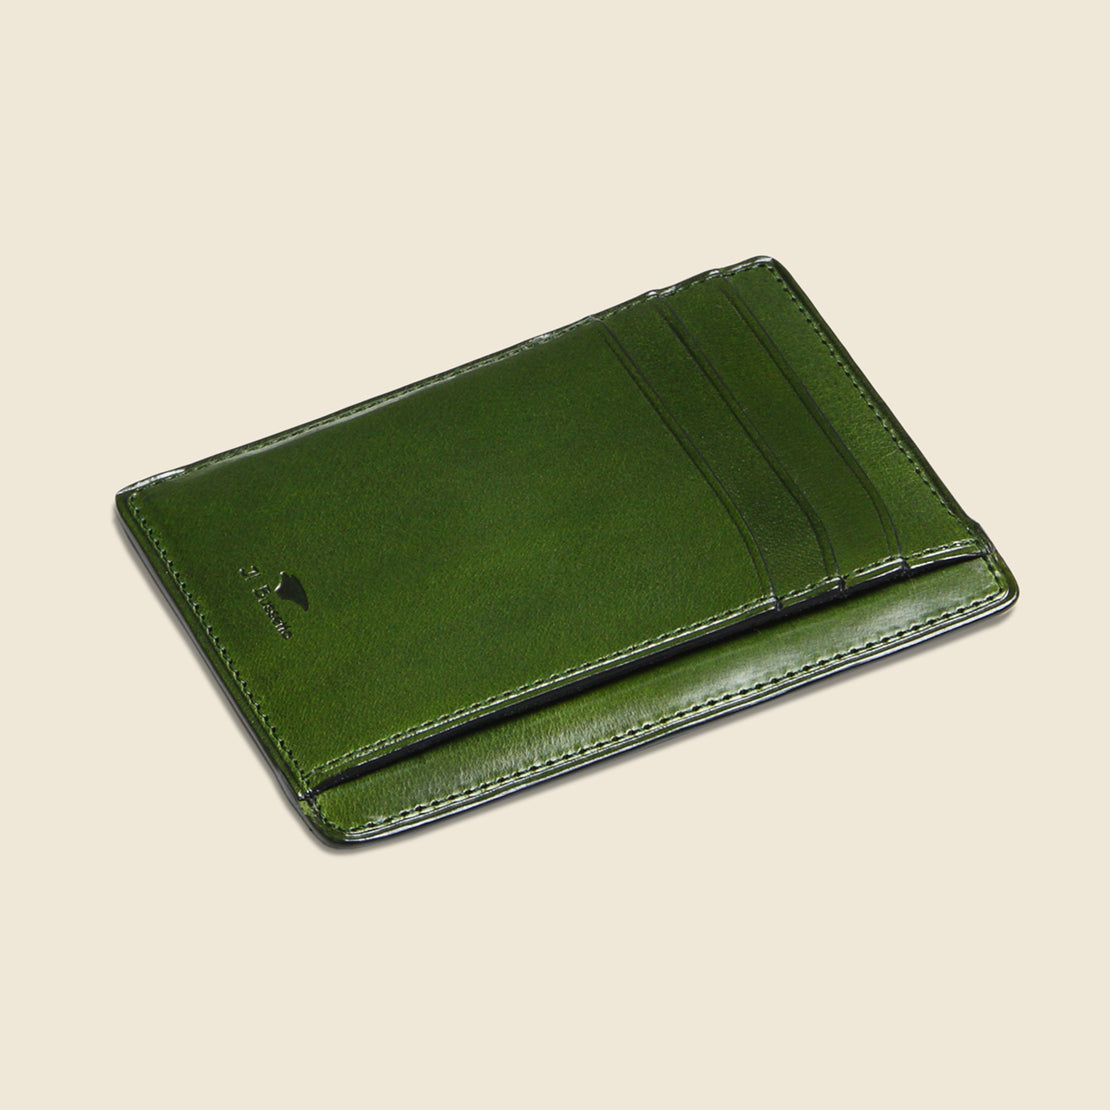 Card and Document Case - Green - Il Bussetto - STAG Provisions - Accessories - Wallets